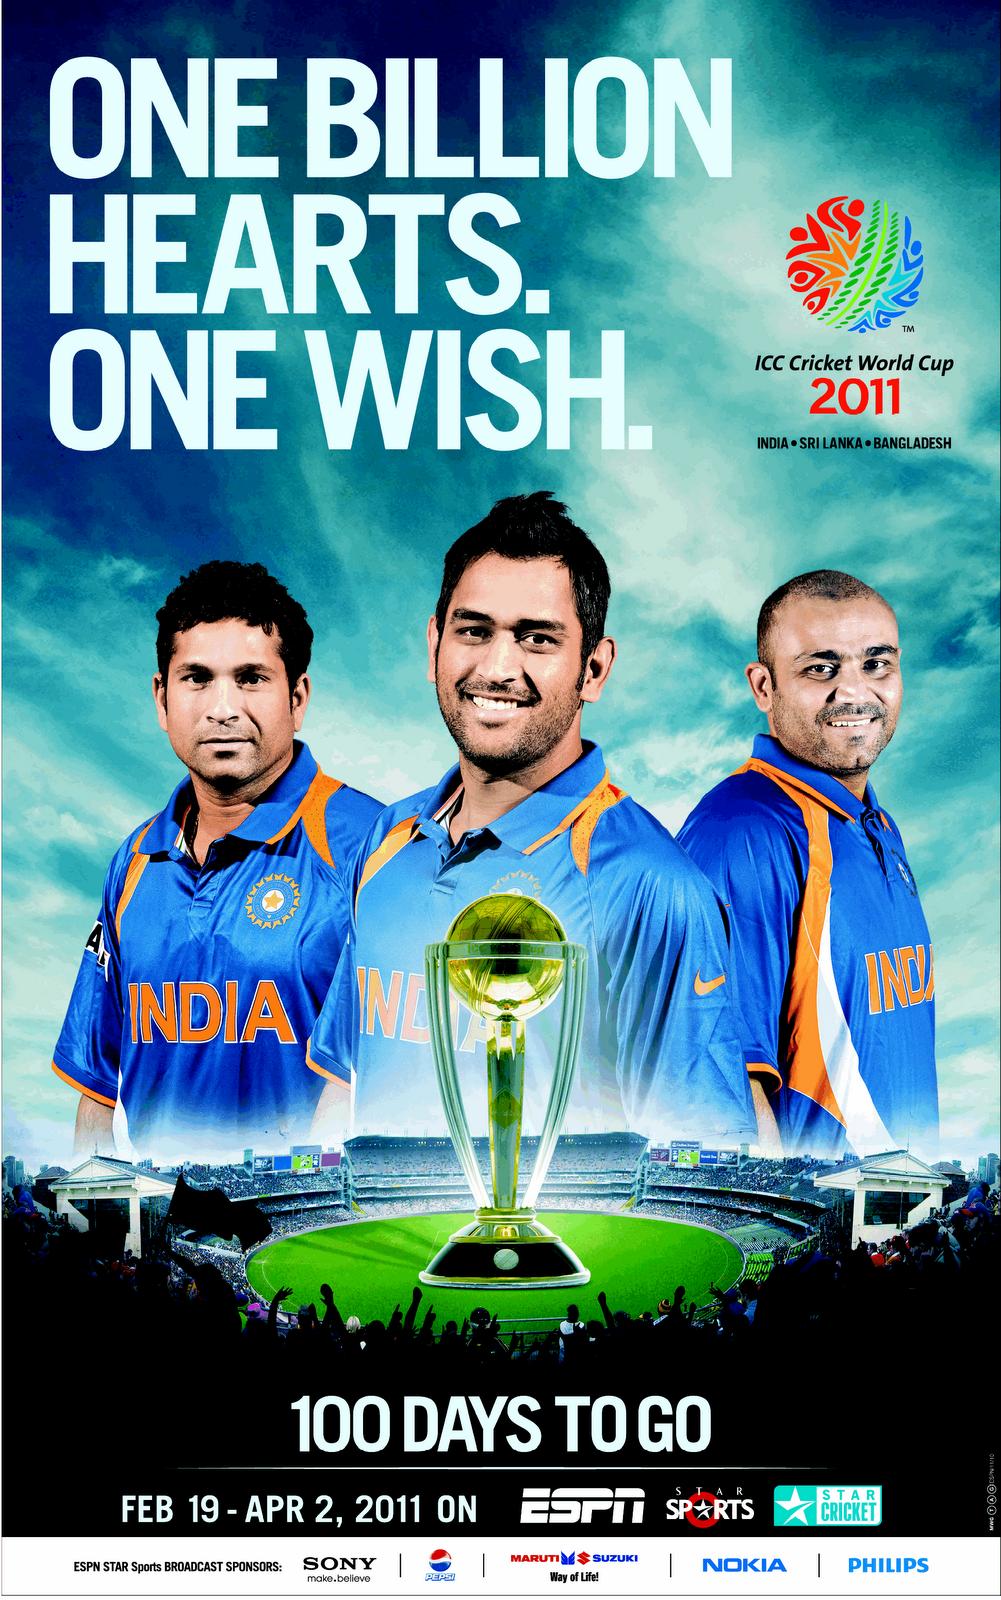 essay on icc cricket world cup 2011 The 2011 icc cricket world cup (officially known as icc cricket world cup 2011) was the tenth cricket world cup it was played in india, sri lanka, and (for the first .